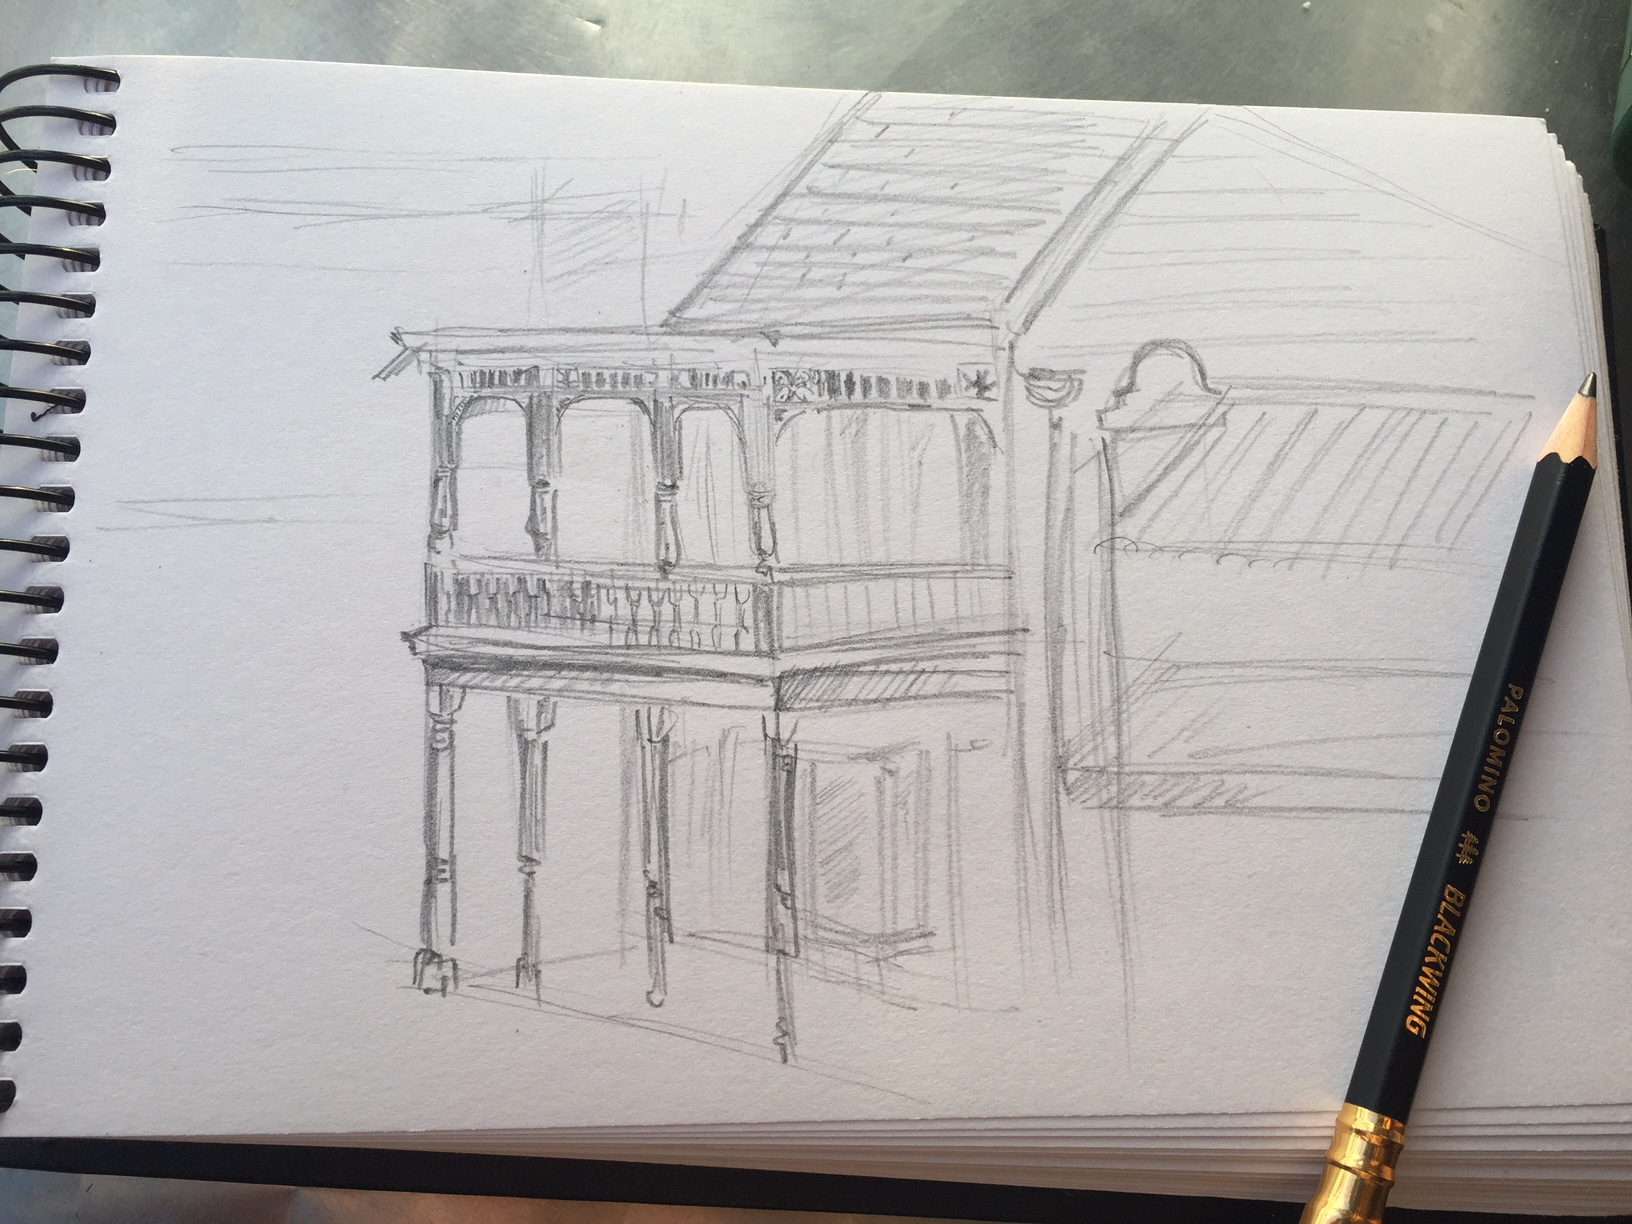 I wish I had the patience to draw all of the detailed ornamentation, or to draw buildings at all, but alas, I do not.